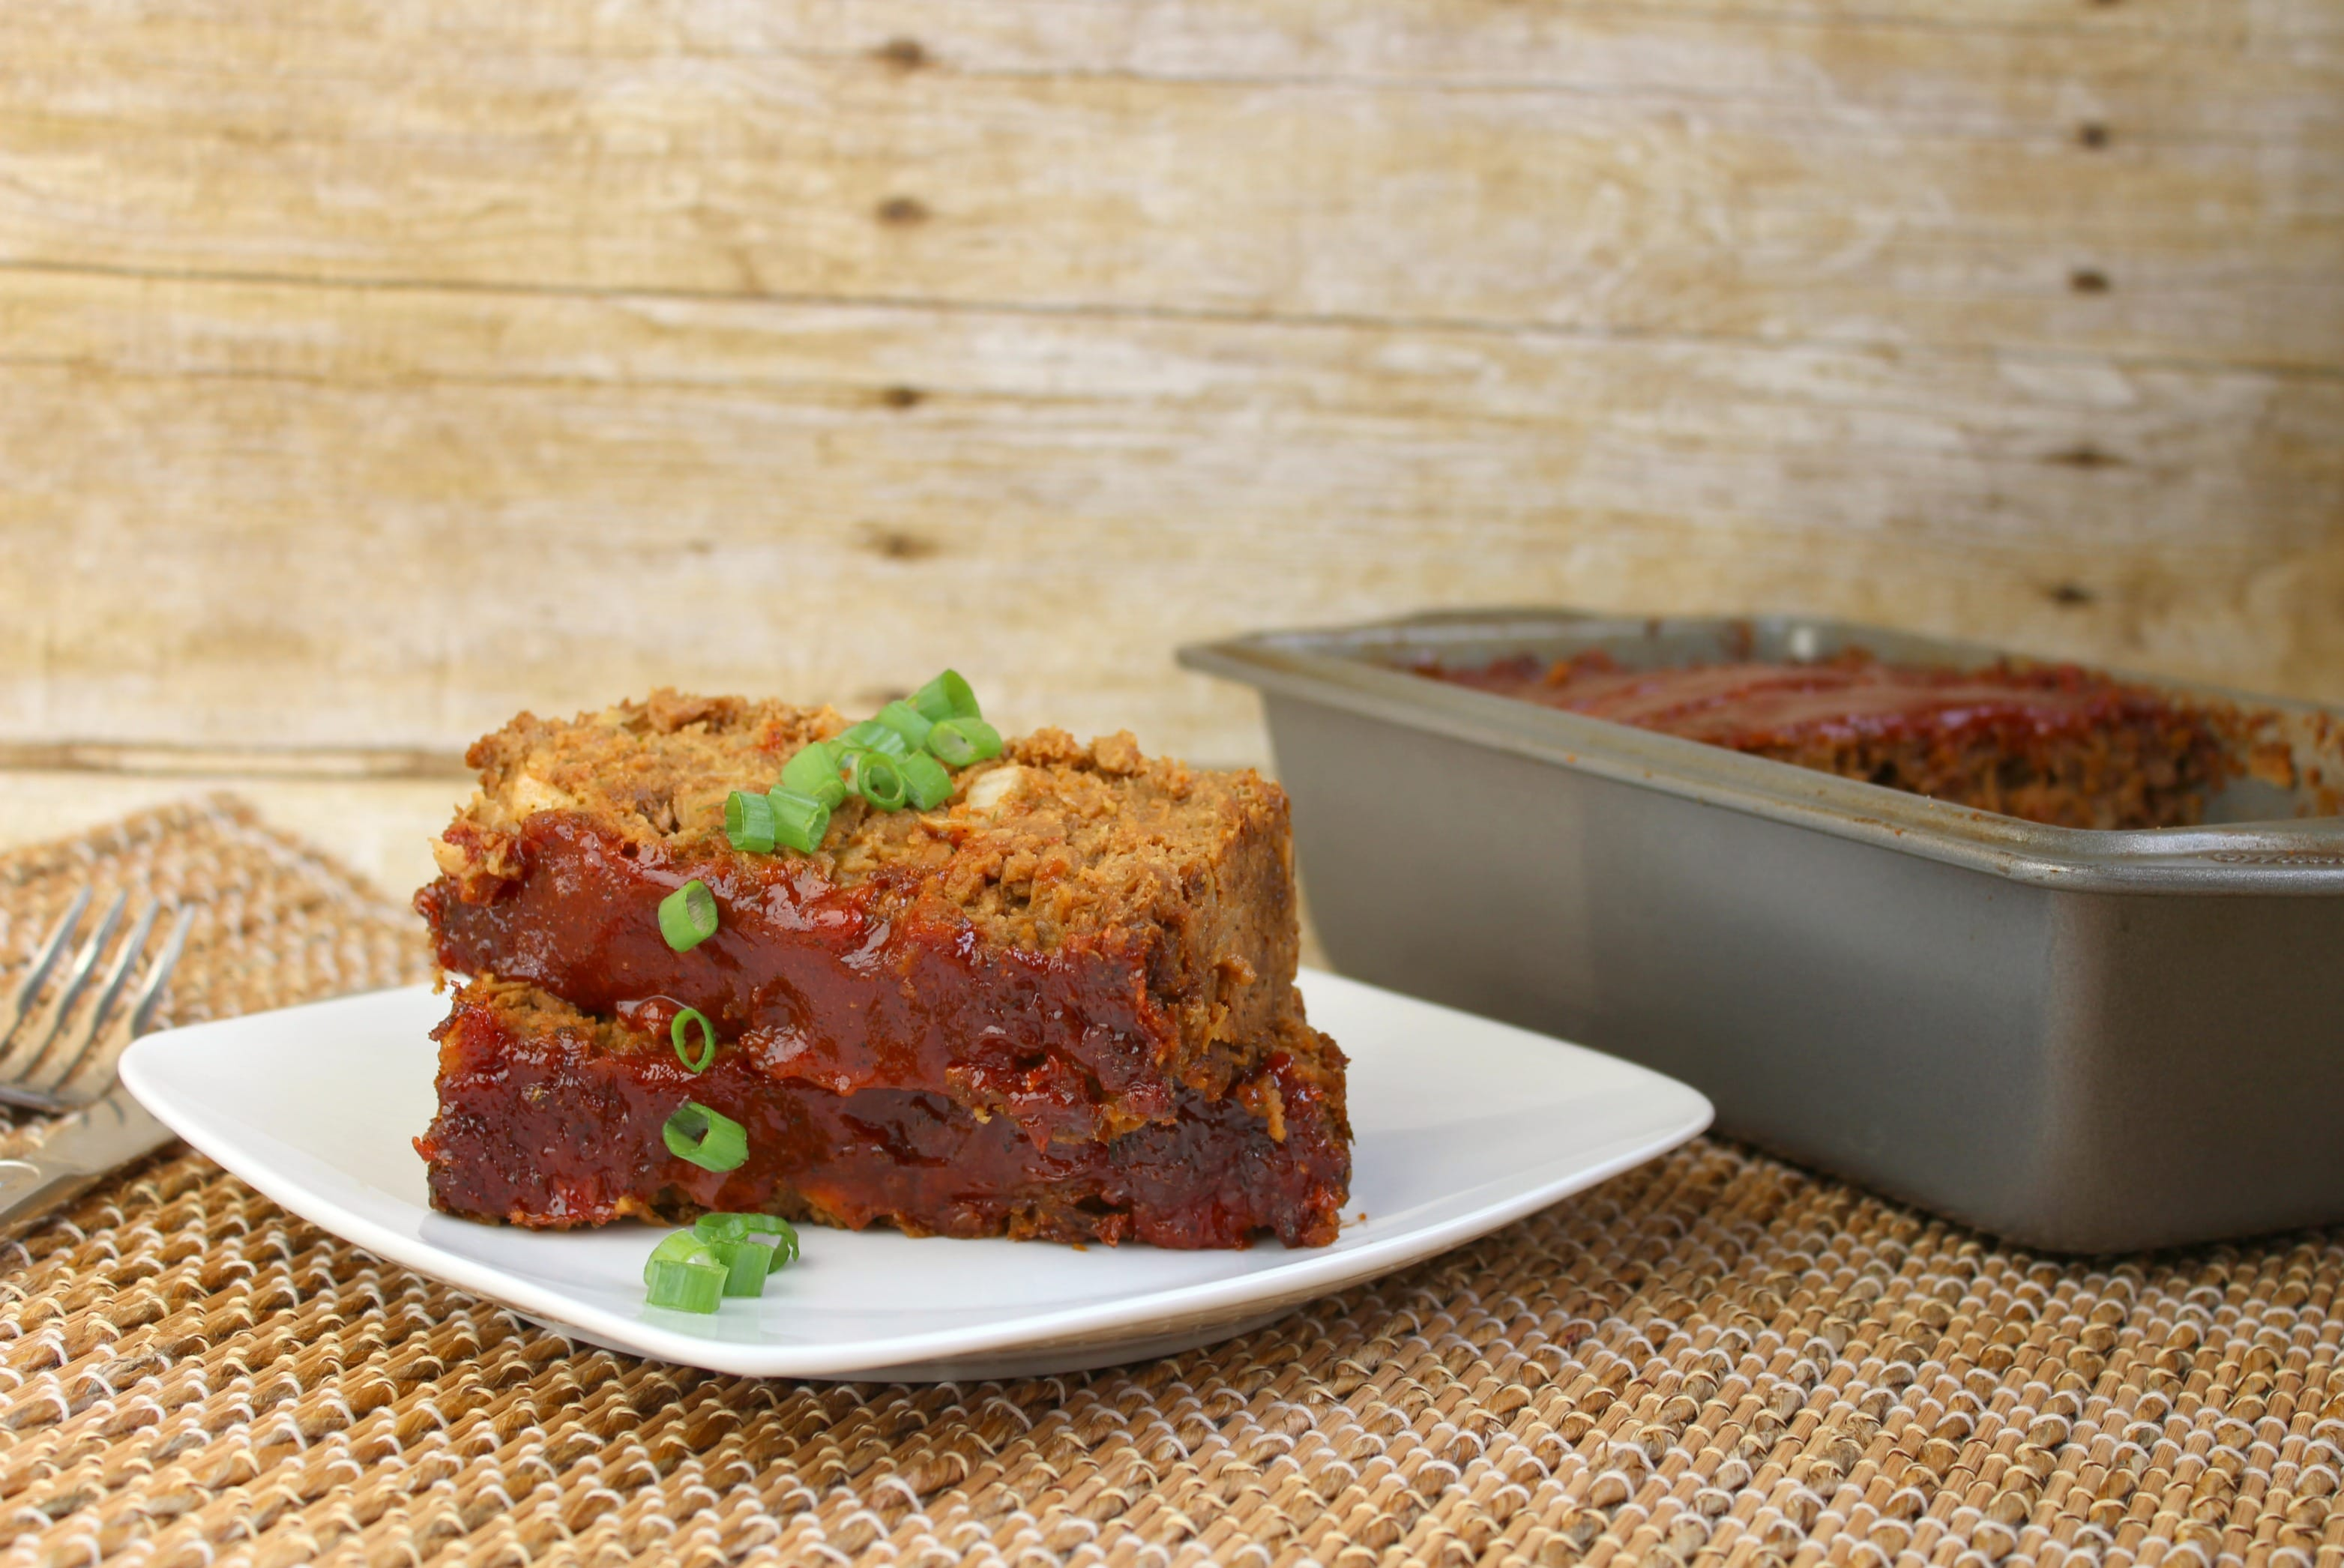 This vegetarian meatloaf is just as juicy and delicious as the real deal!